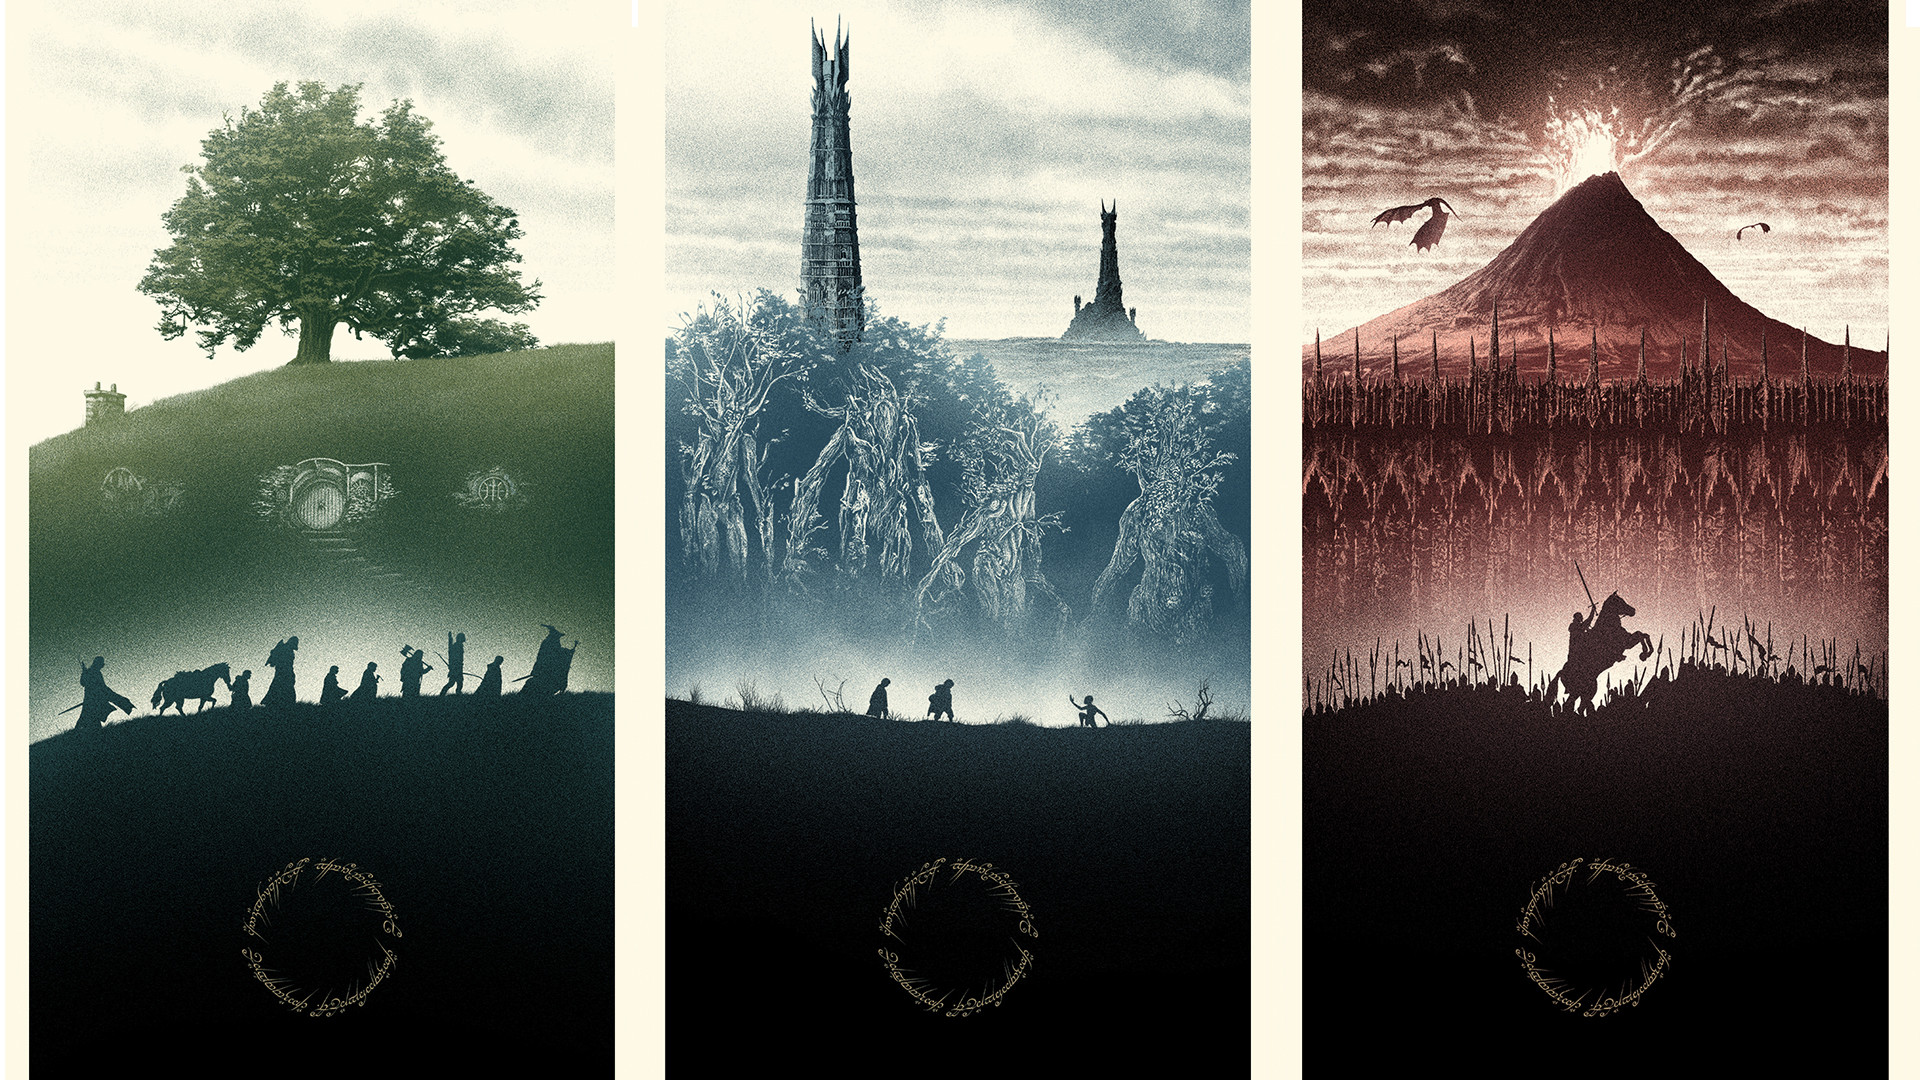 lord of the rings wallpaper  Lord Of The Rings Wallpapers HD | PixelsTalk.Net